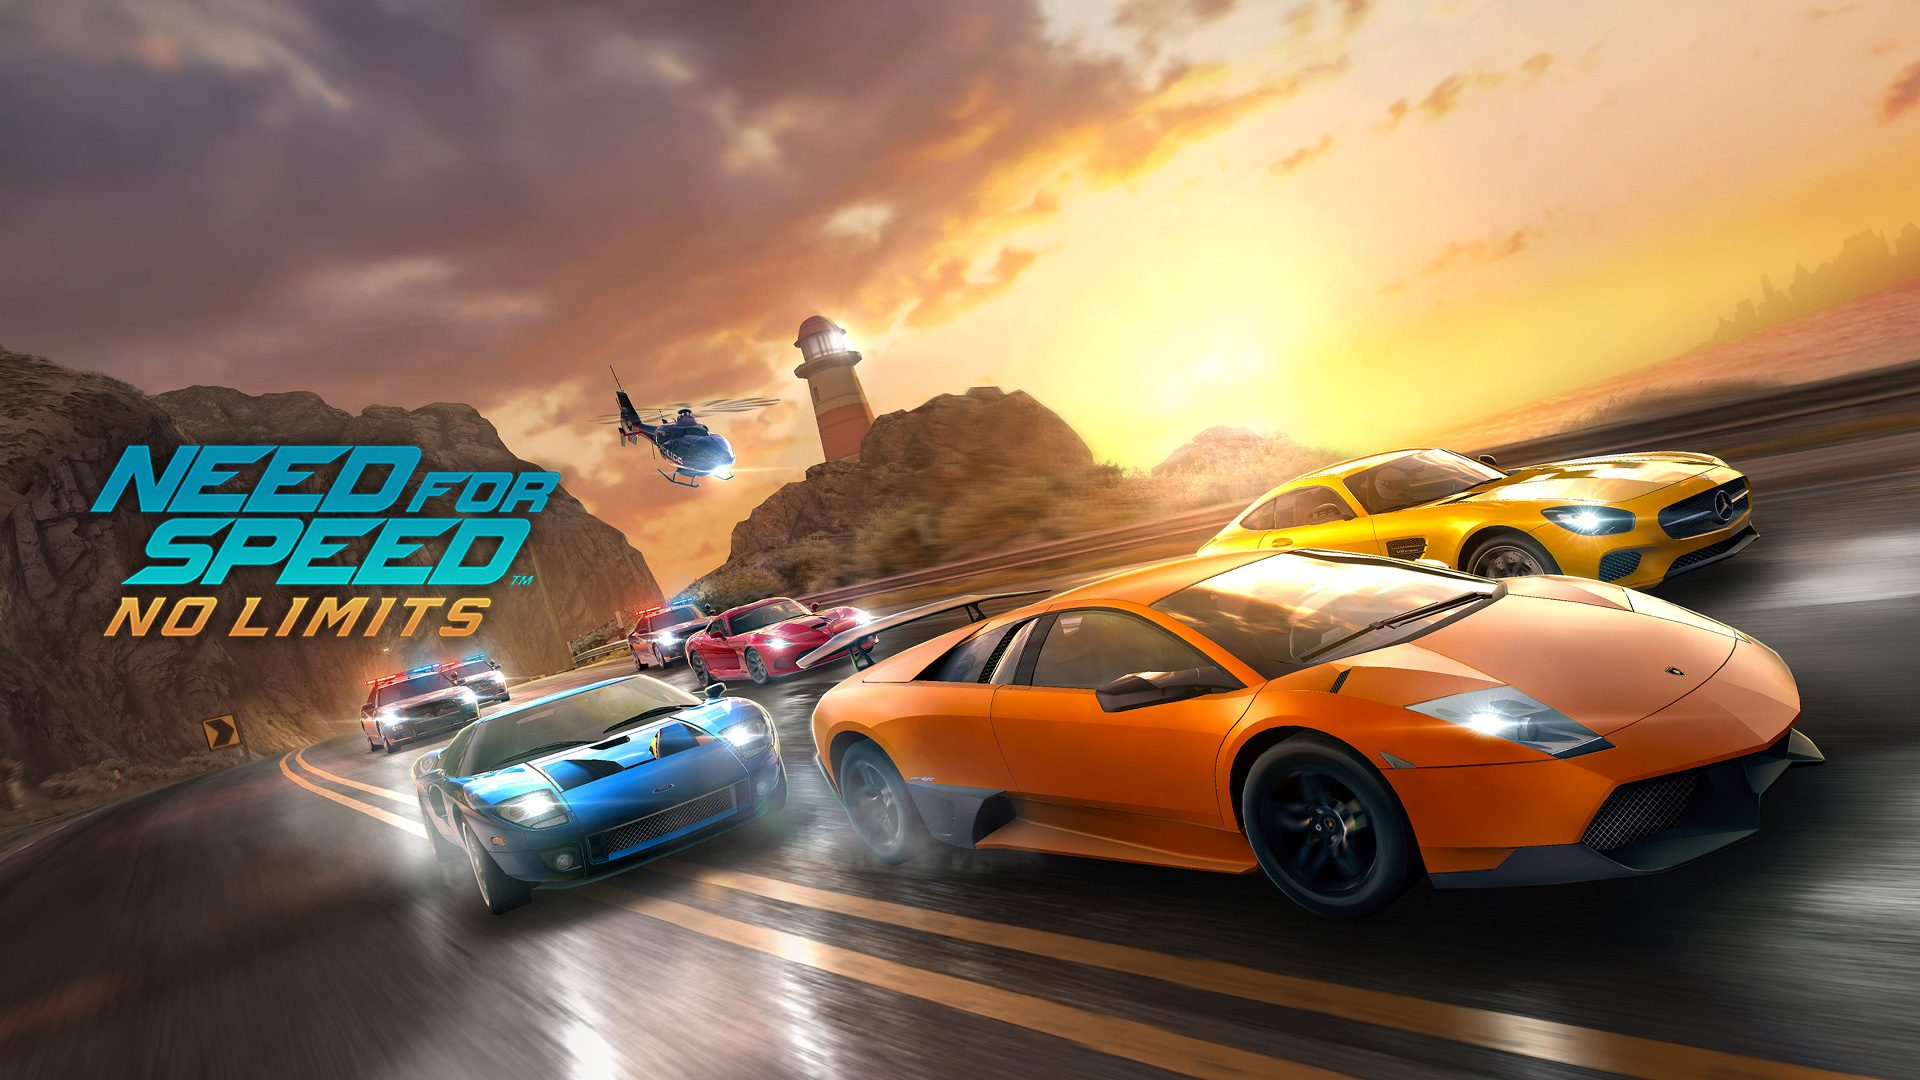 Need For Speed No Limits Best Cars To Get With Max Pr 2020